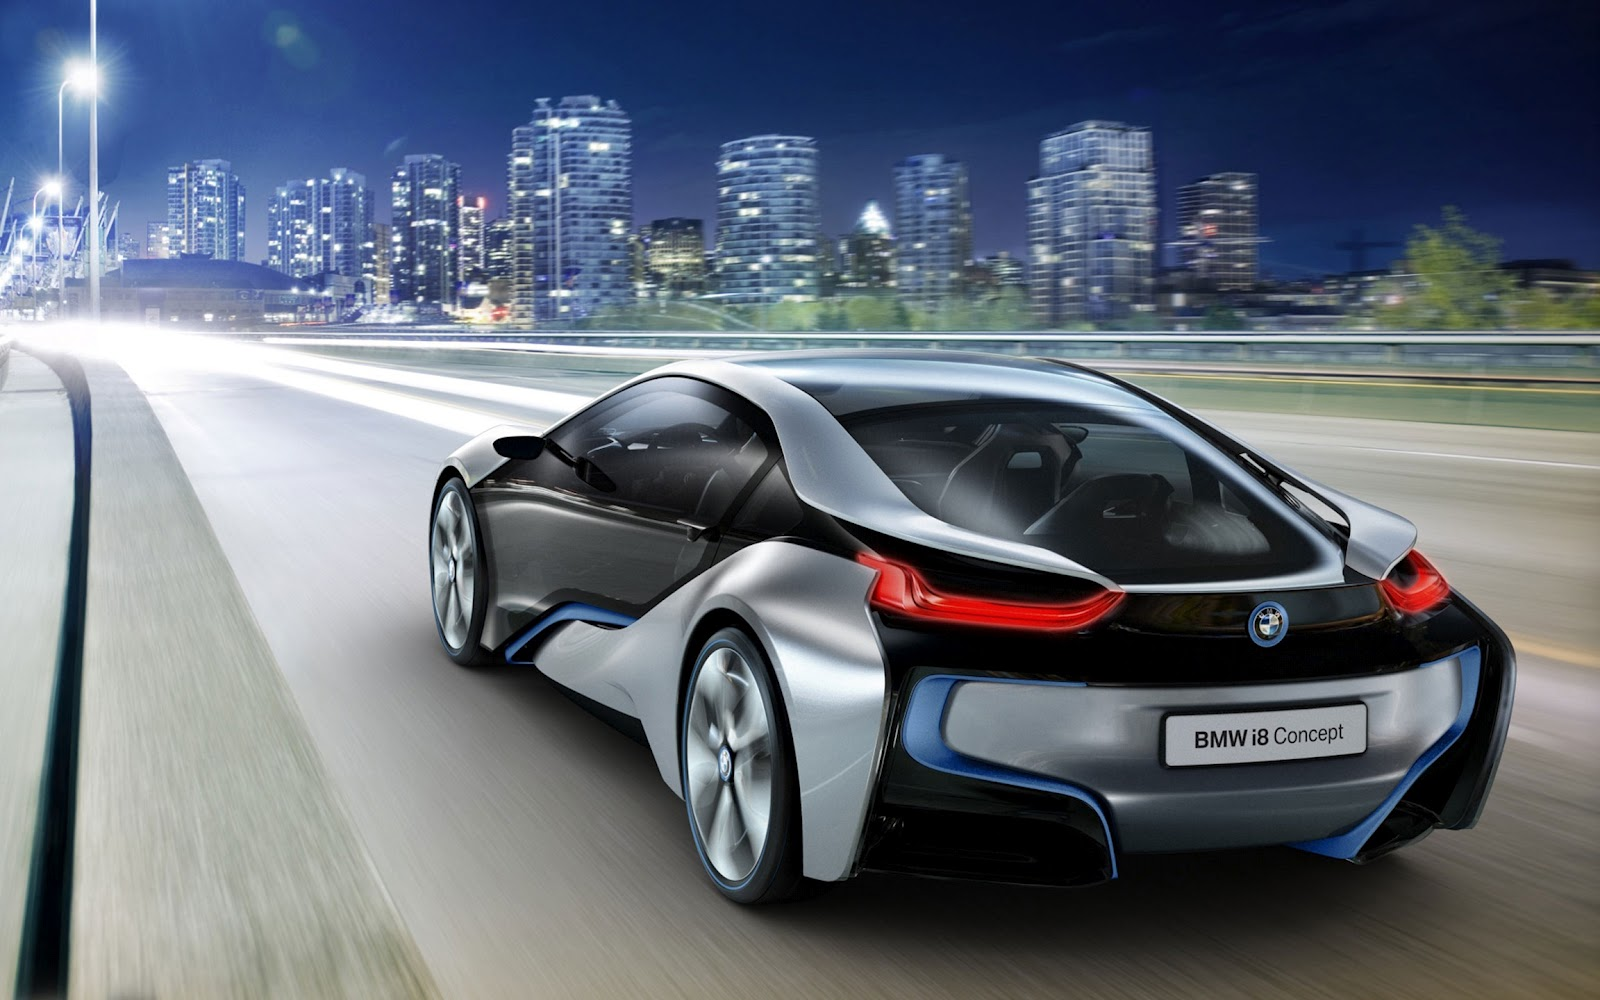 Bmw i8 Concept Car HD Wallpaper ~ HD Car Wallpapers